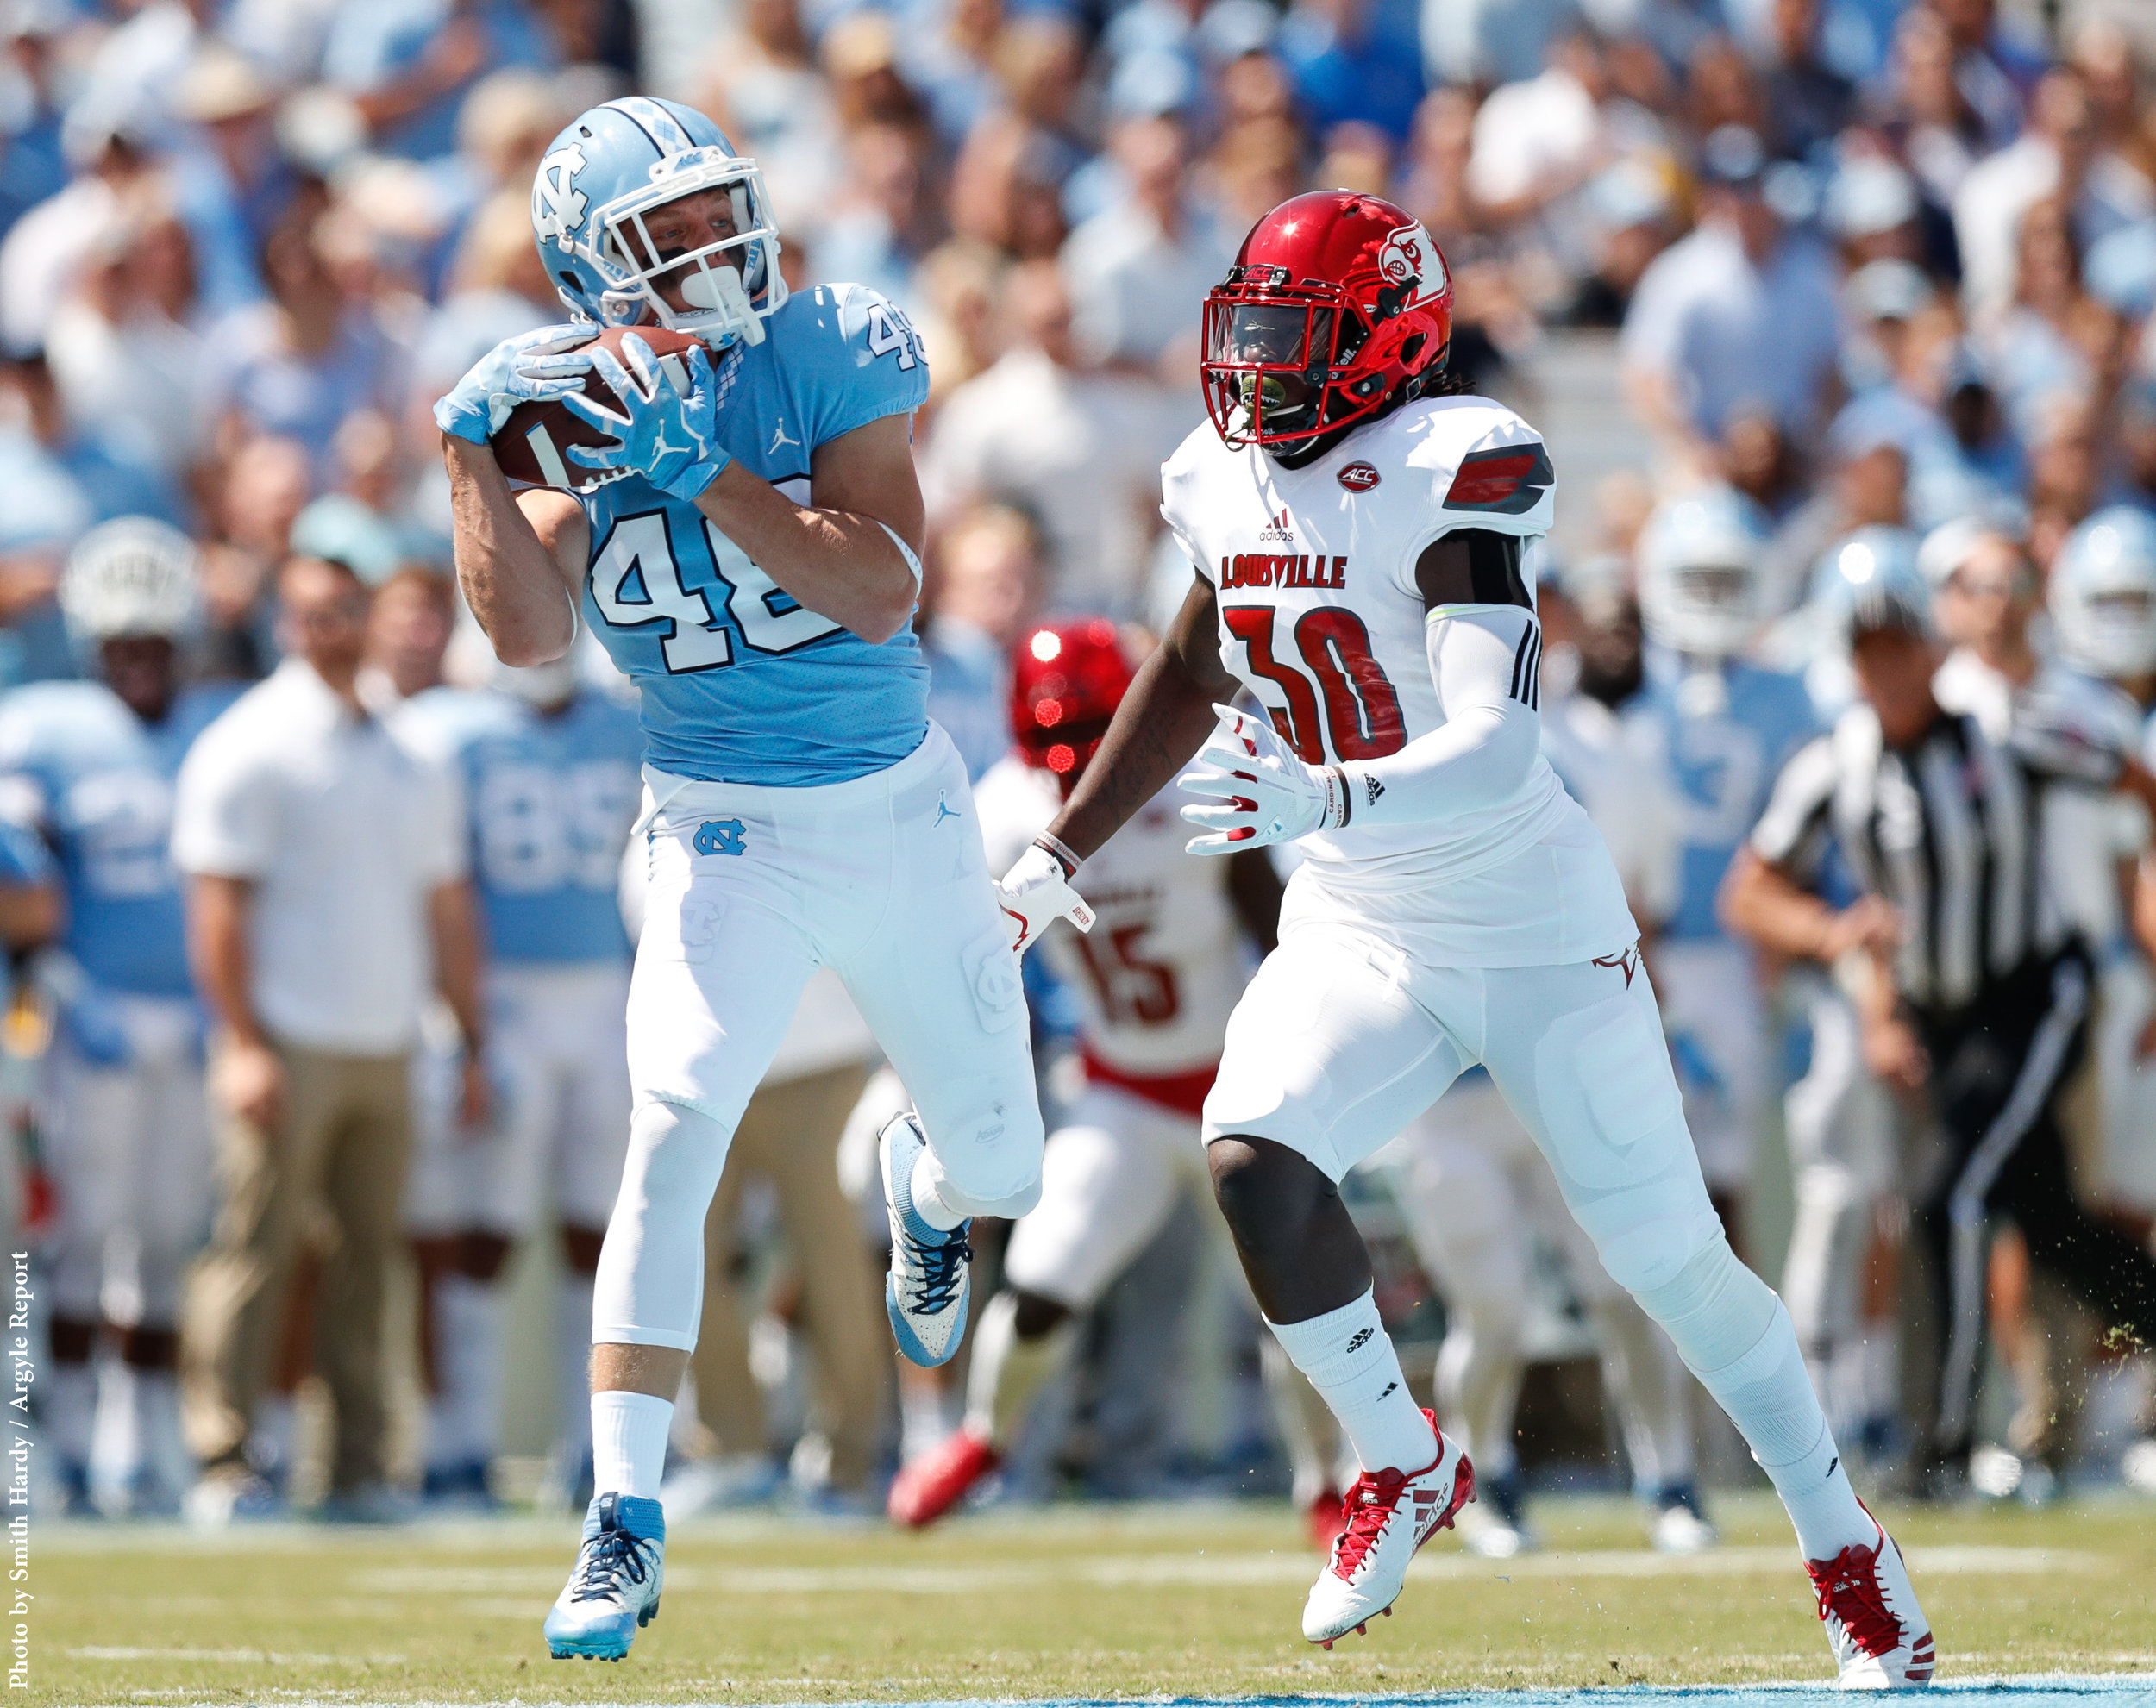 Tarheels vs Cards Football 2017 (5 of 25).jpg